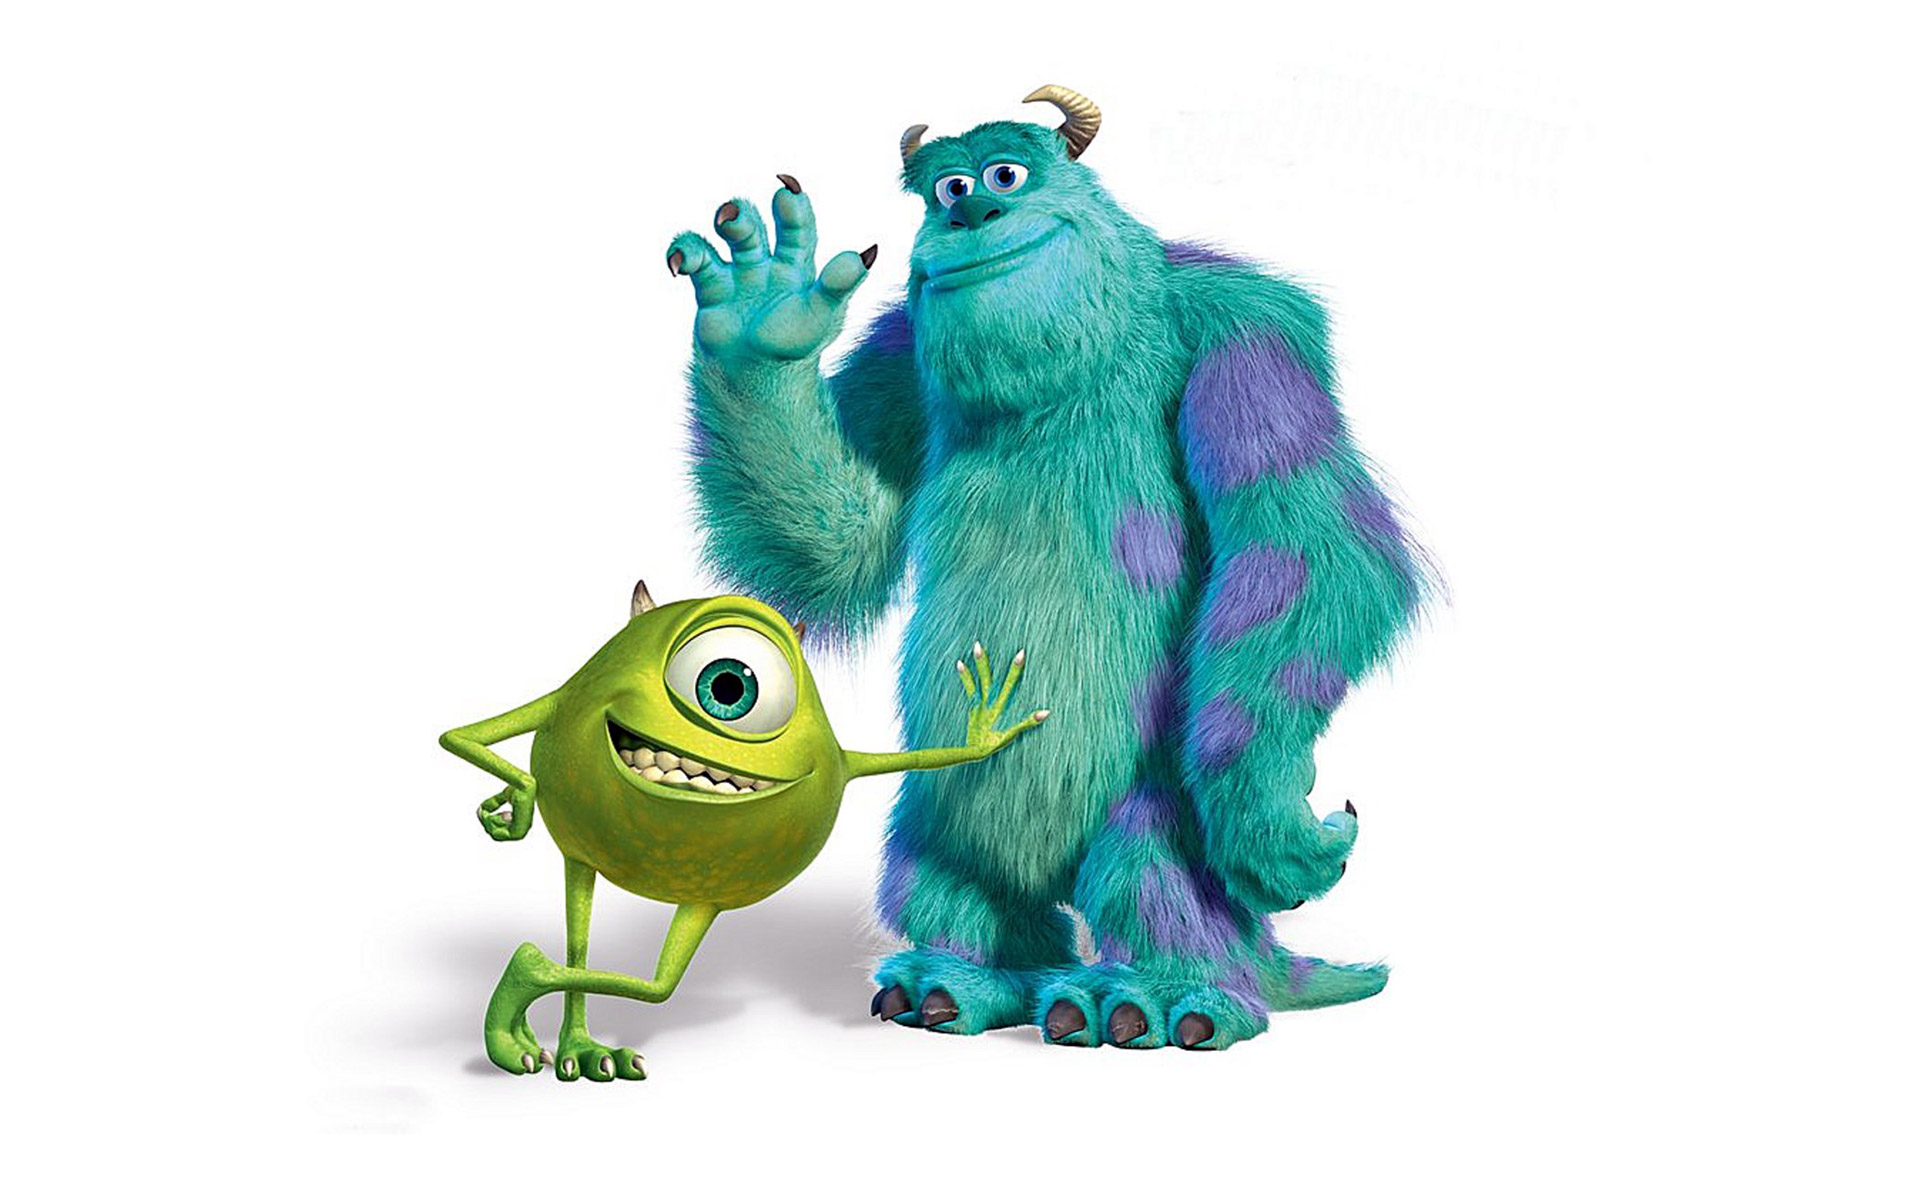 Disney-Pixar-Monsters-Inc-2-Sulley-and-Mike